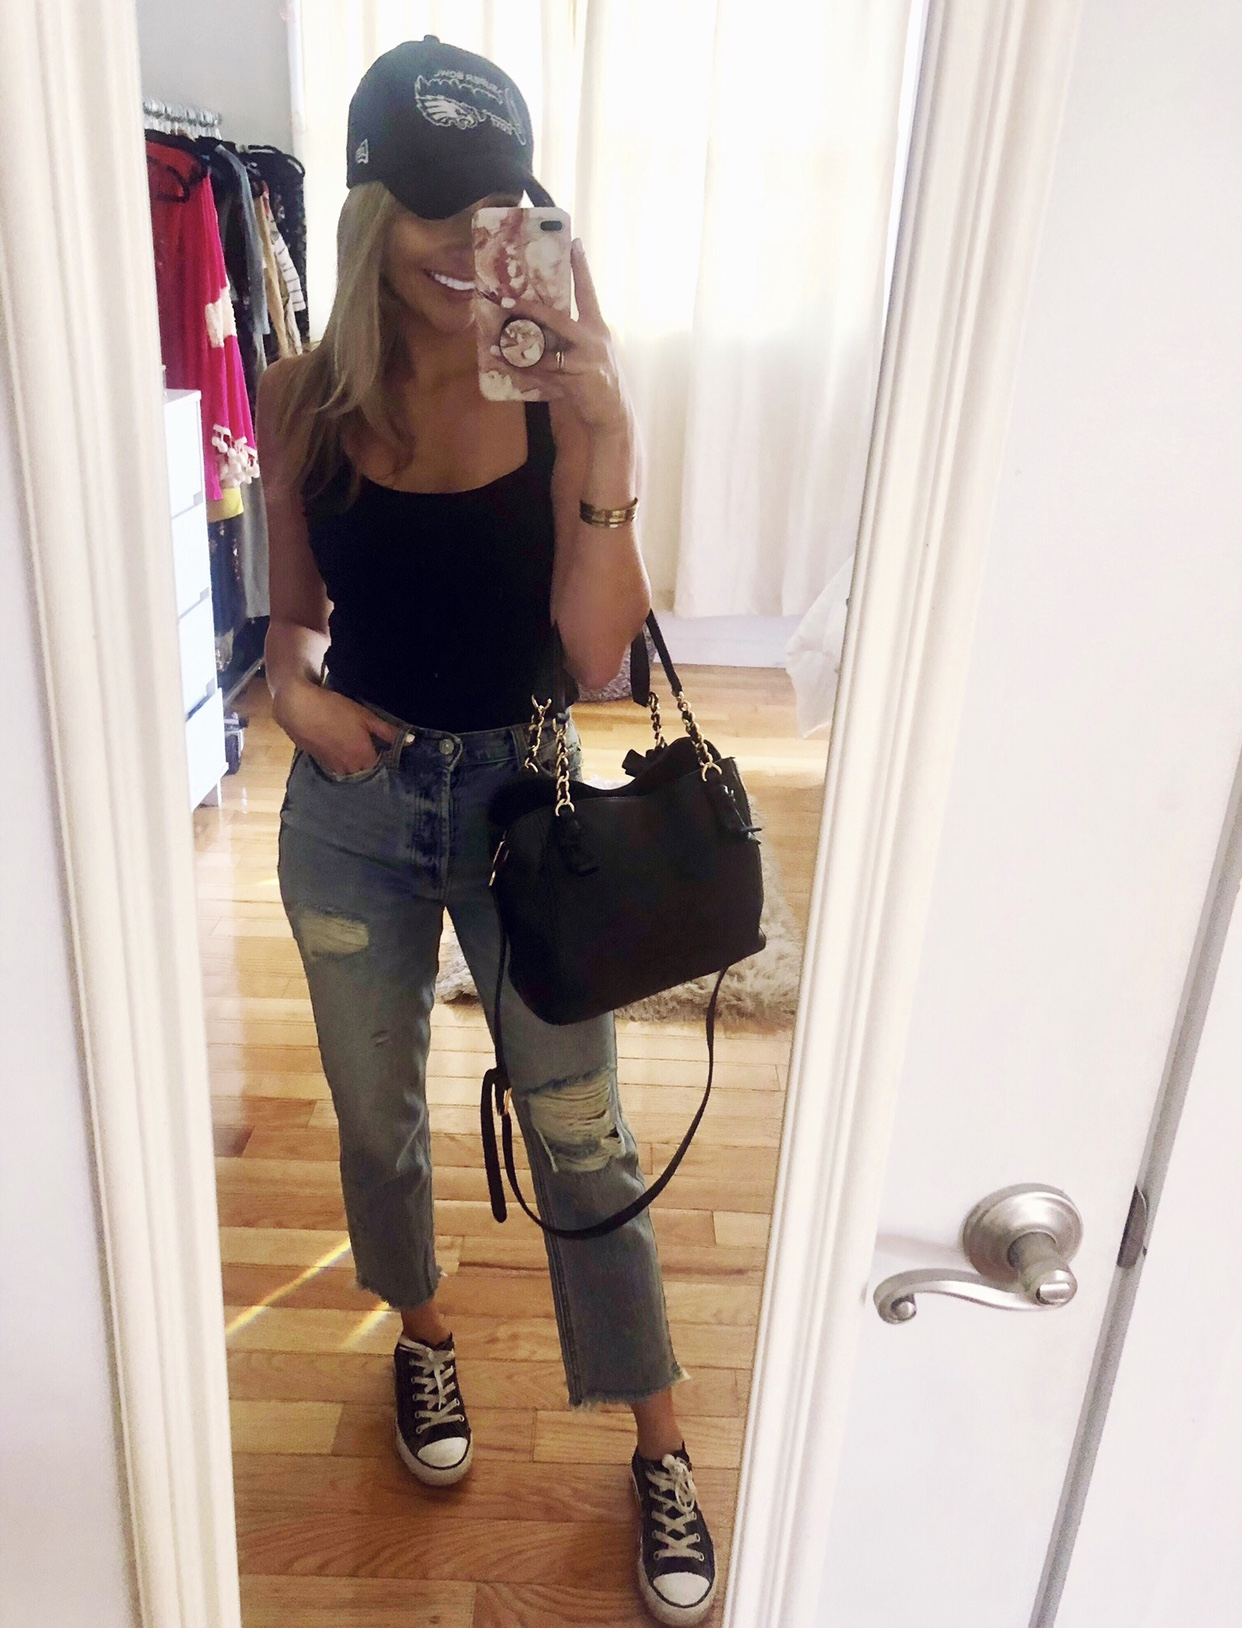 Recreate the Look: - Tank Top: Forever 21Jeans: Urban OutfittersBag: Tory BurchShoes: Converse